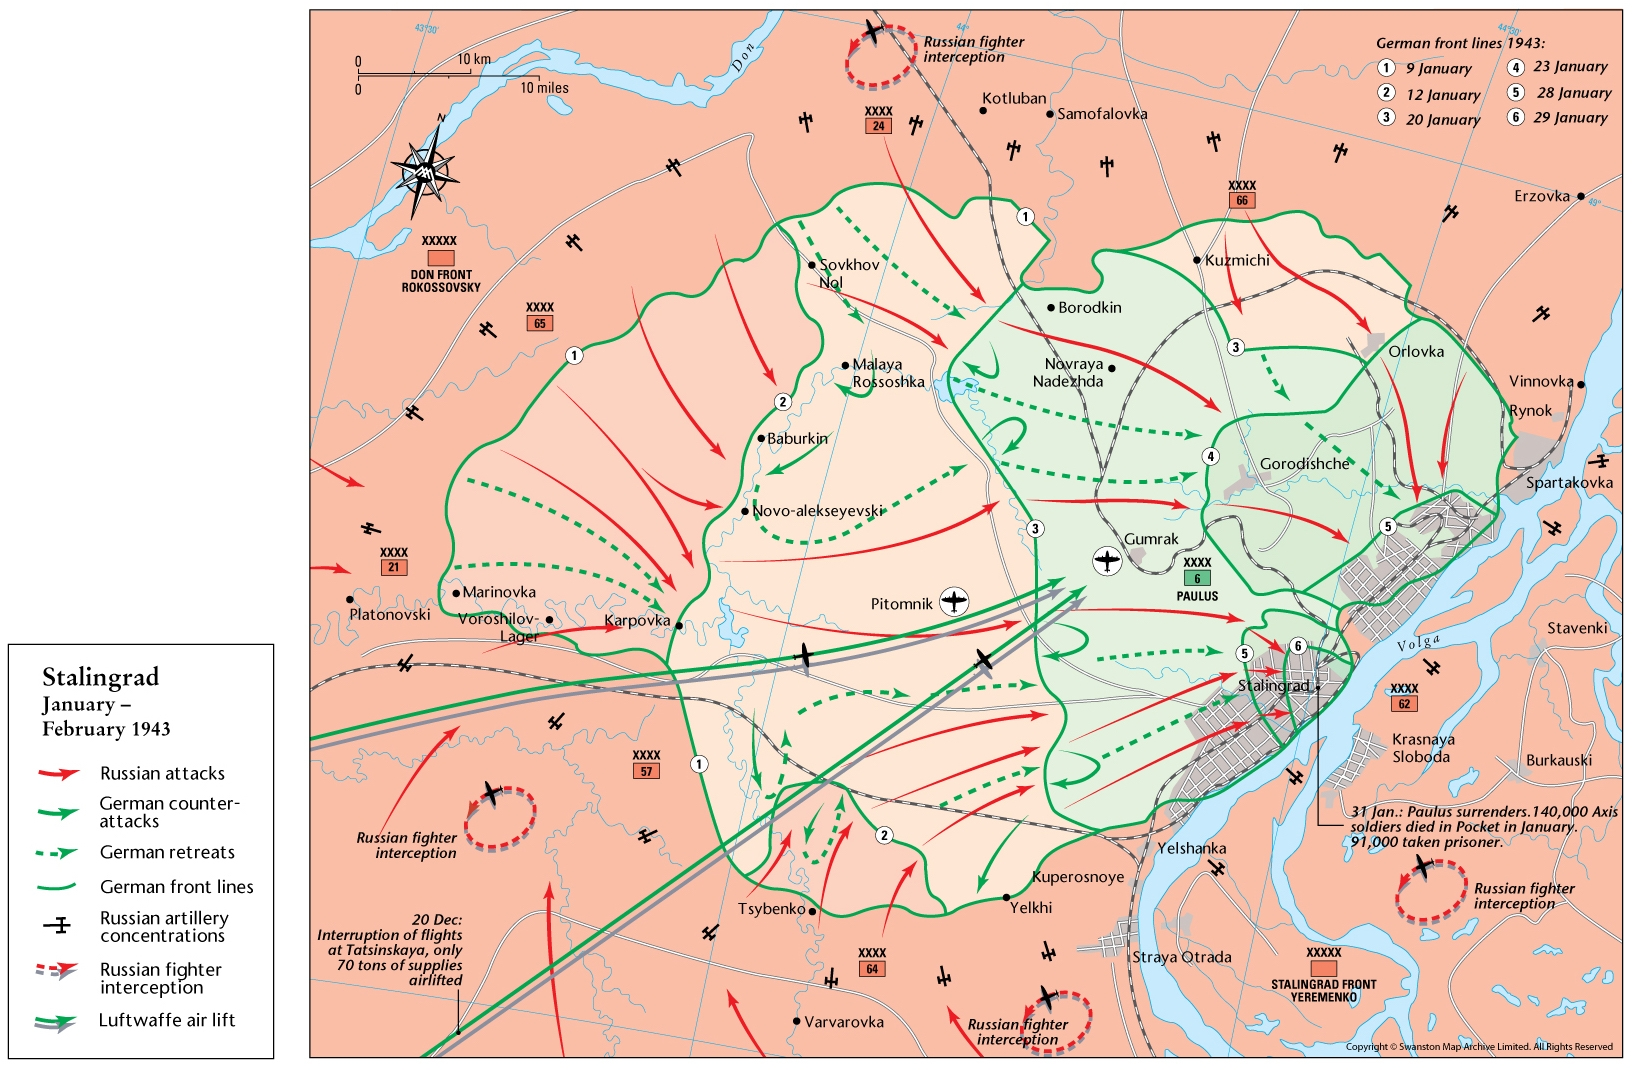 Battle Of Stalingrad Map From Themaparchive 2